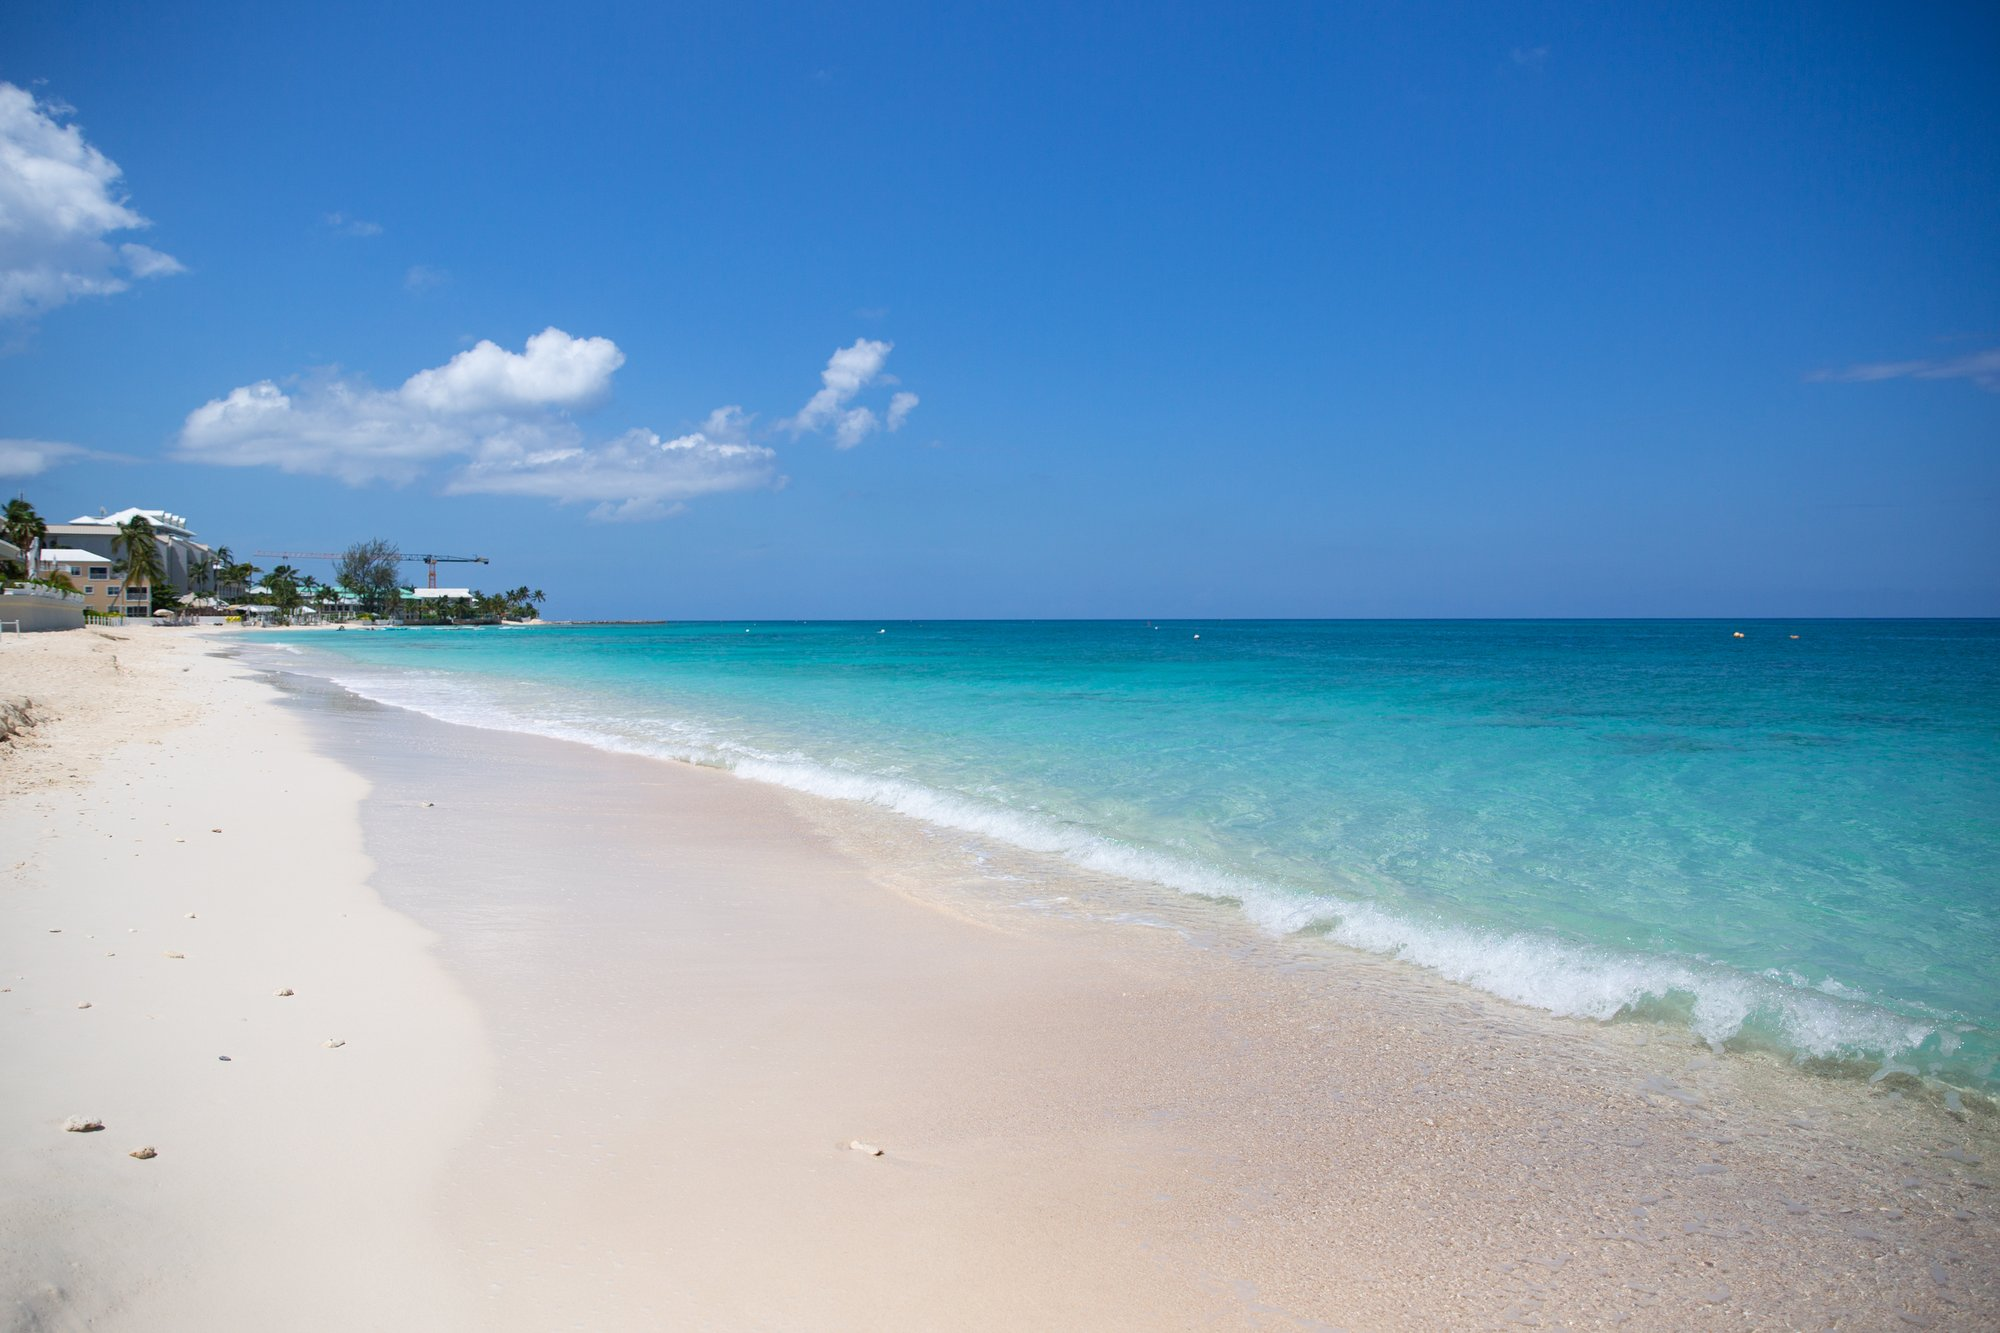 Condo in George Town, George Town, Cayman Islands 1 - 11552528